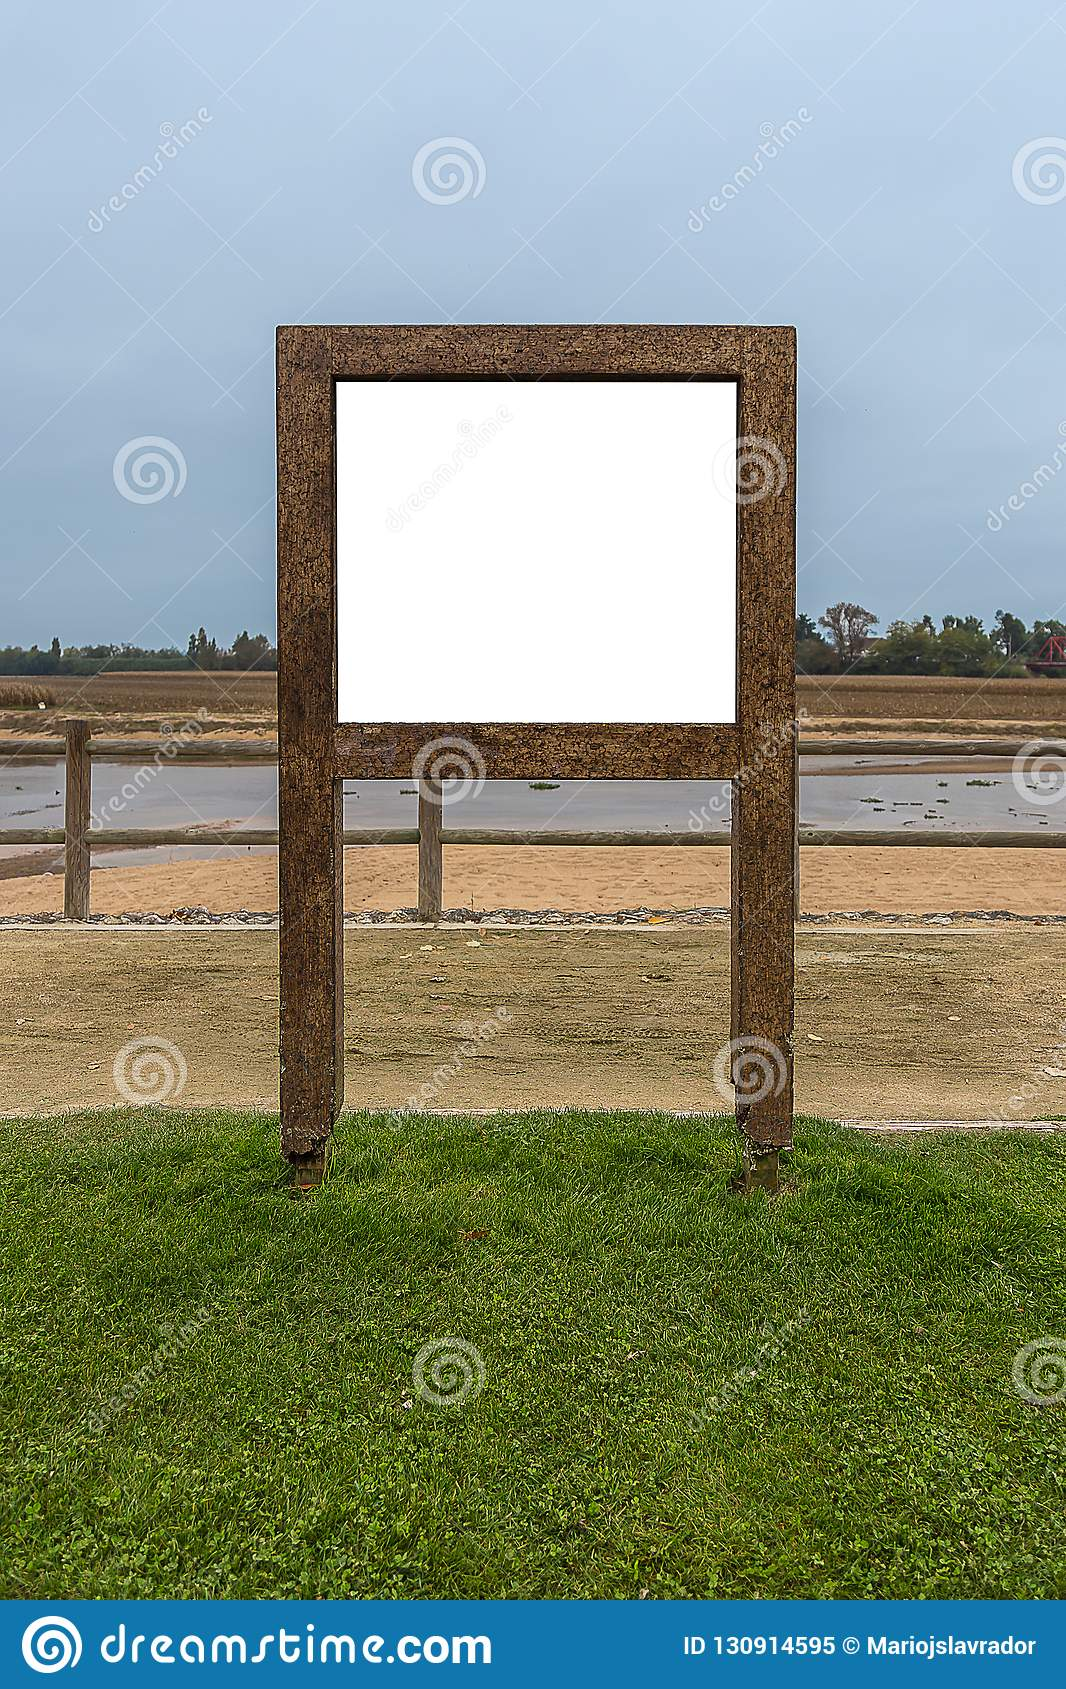 Wooden Advertising Frame By The River, in a Grass Field Under a Pale Sky